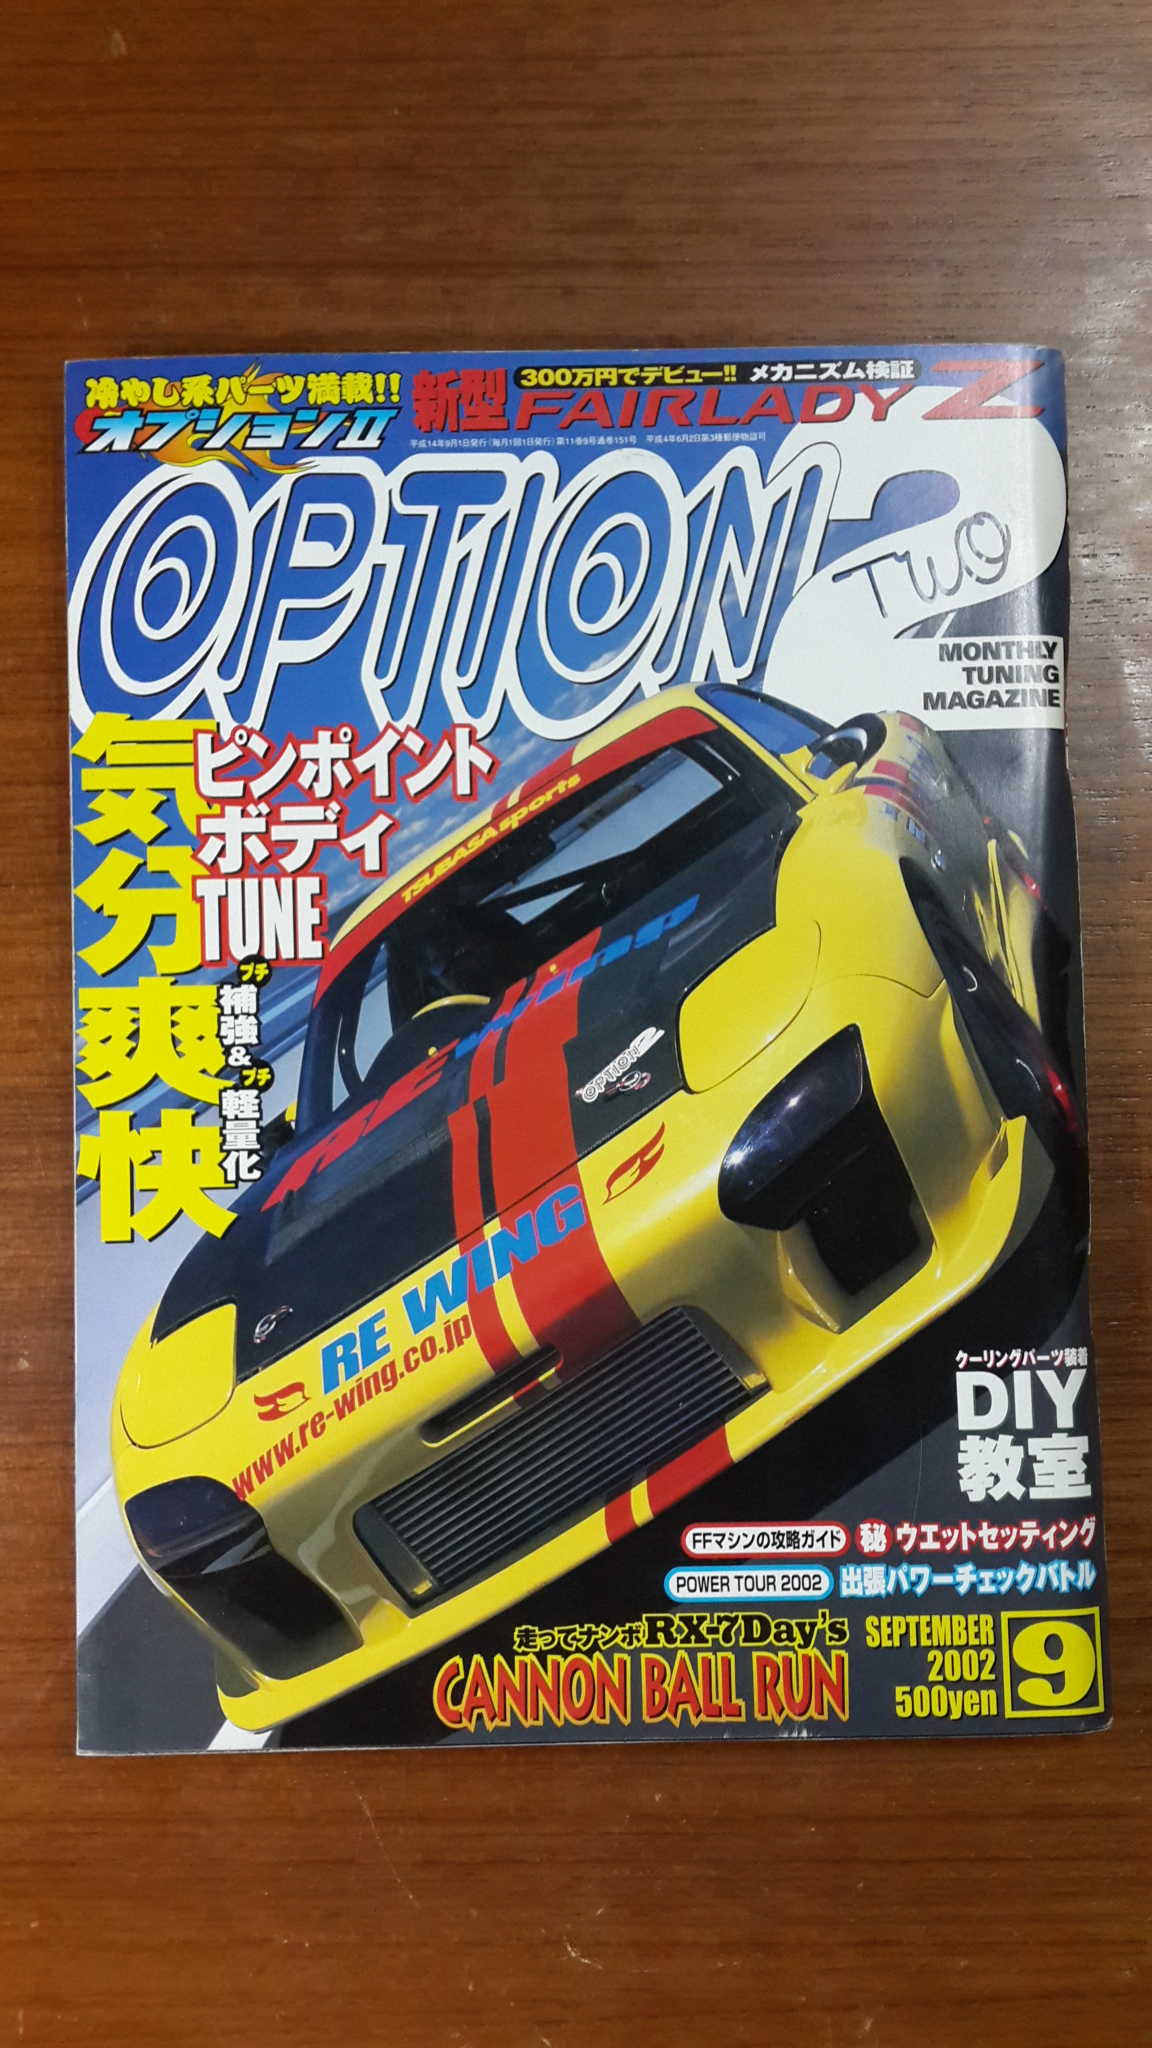 OPTION TWO 2 (Japan) : 2002 / 9